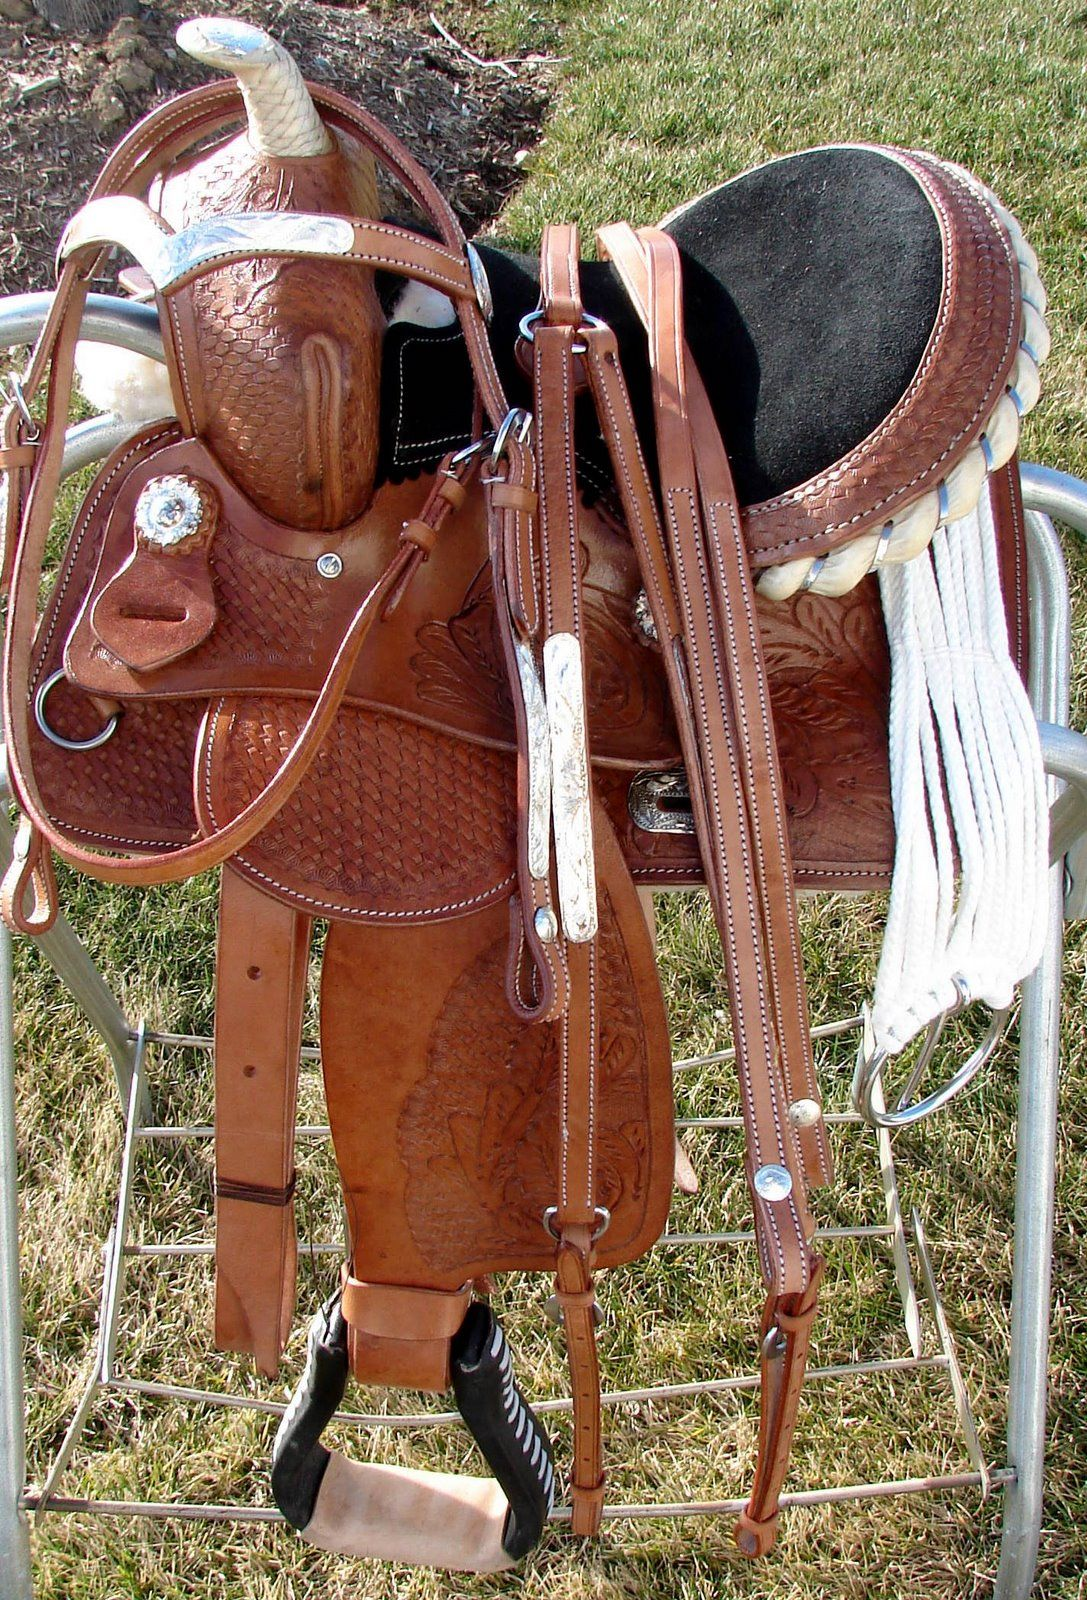 Pin by Jessica Cross on Horse Tack | Pony saddle, Western saddles